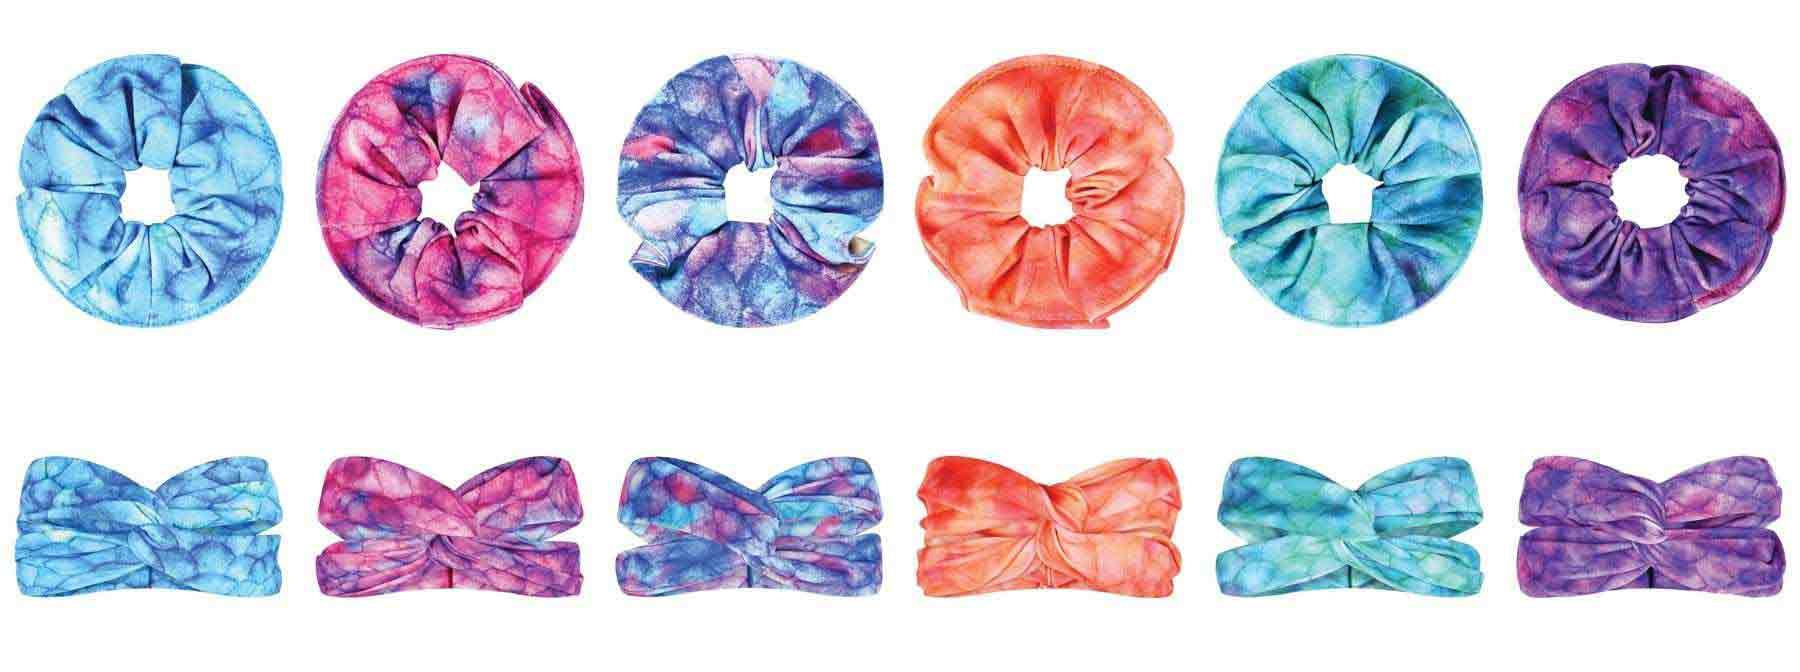 Mermaid Hair Accessories from Planet Mermaid